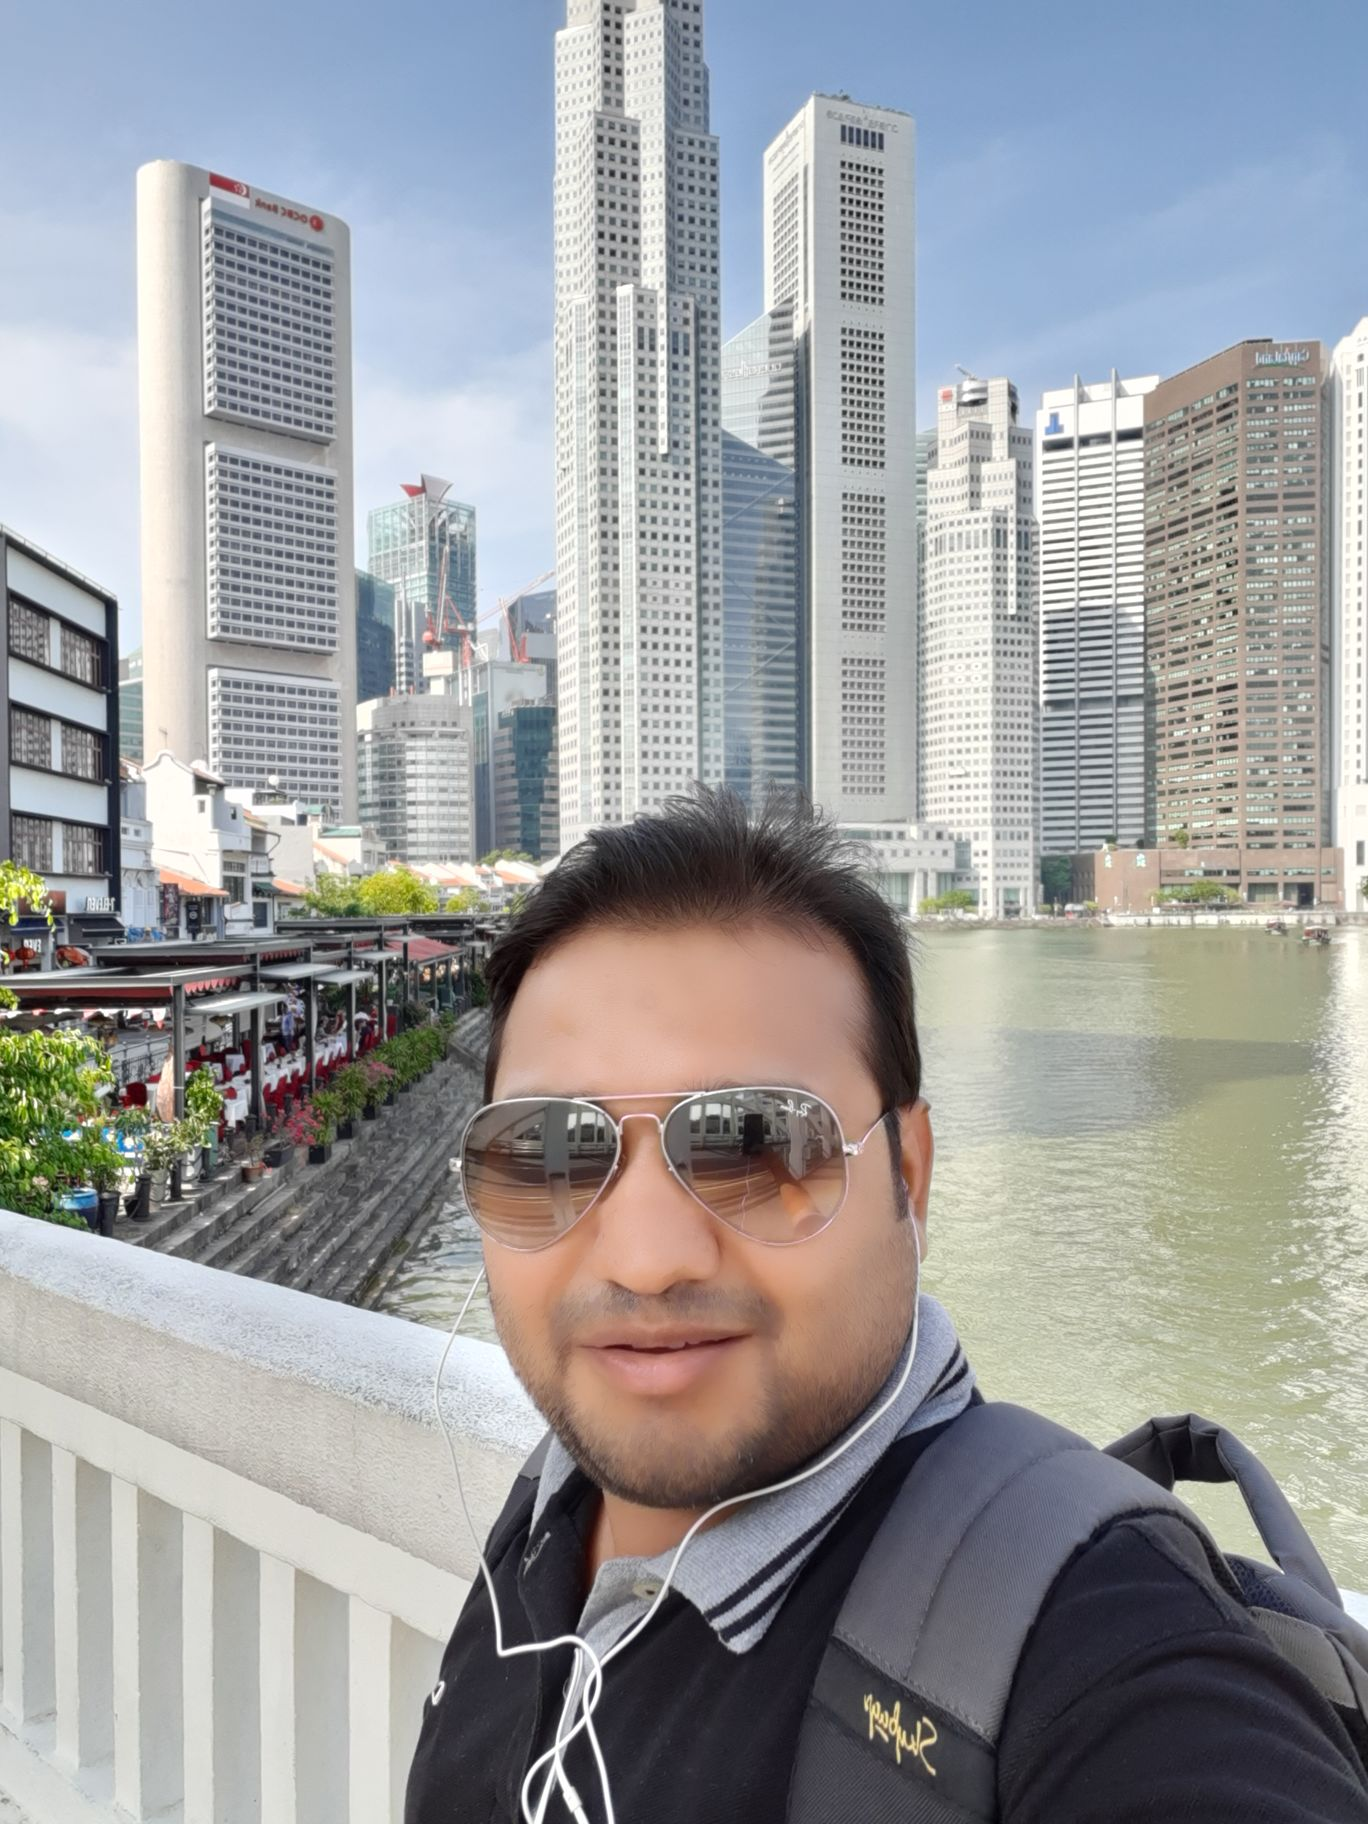 Photo of Singapore By bhavesh shah